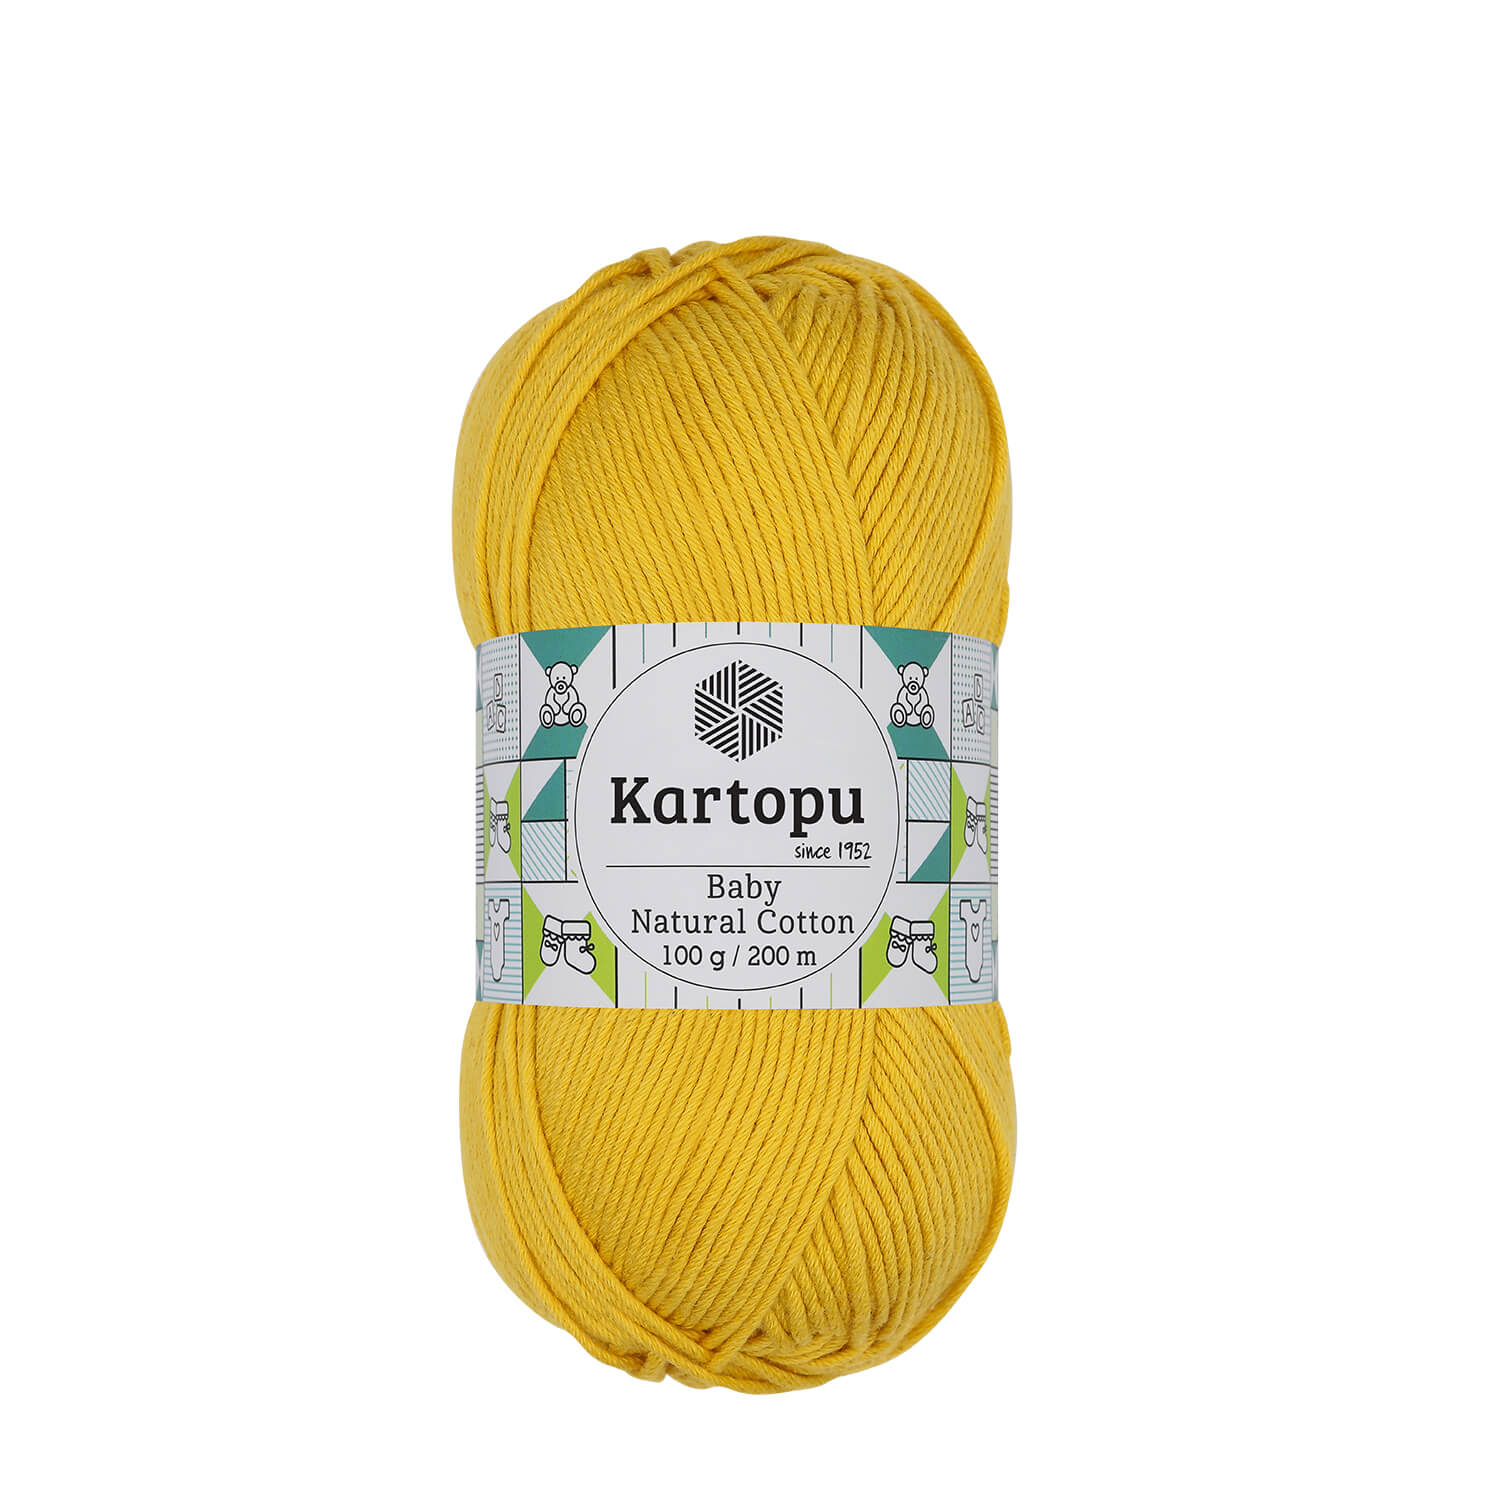 Baby Natural Cotton K318